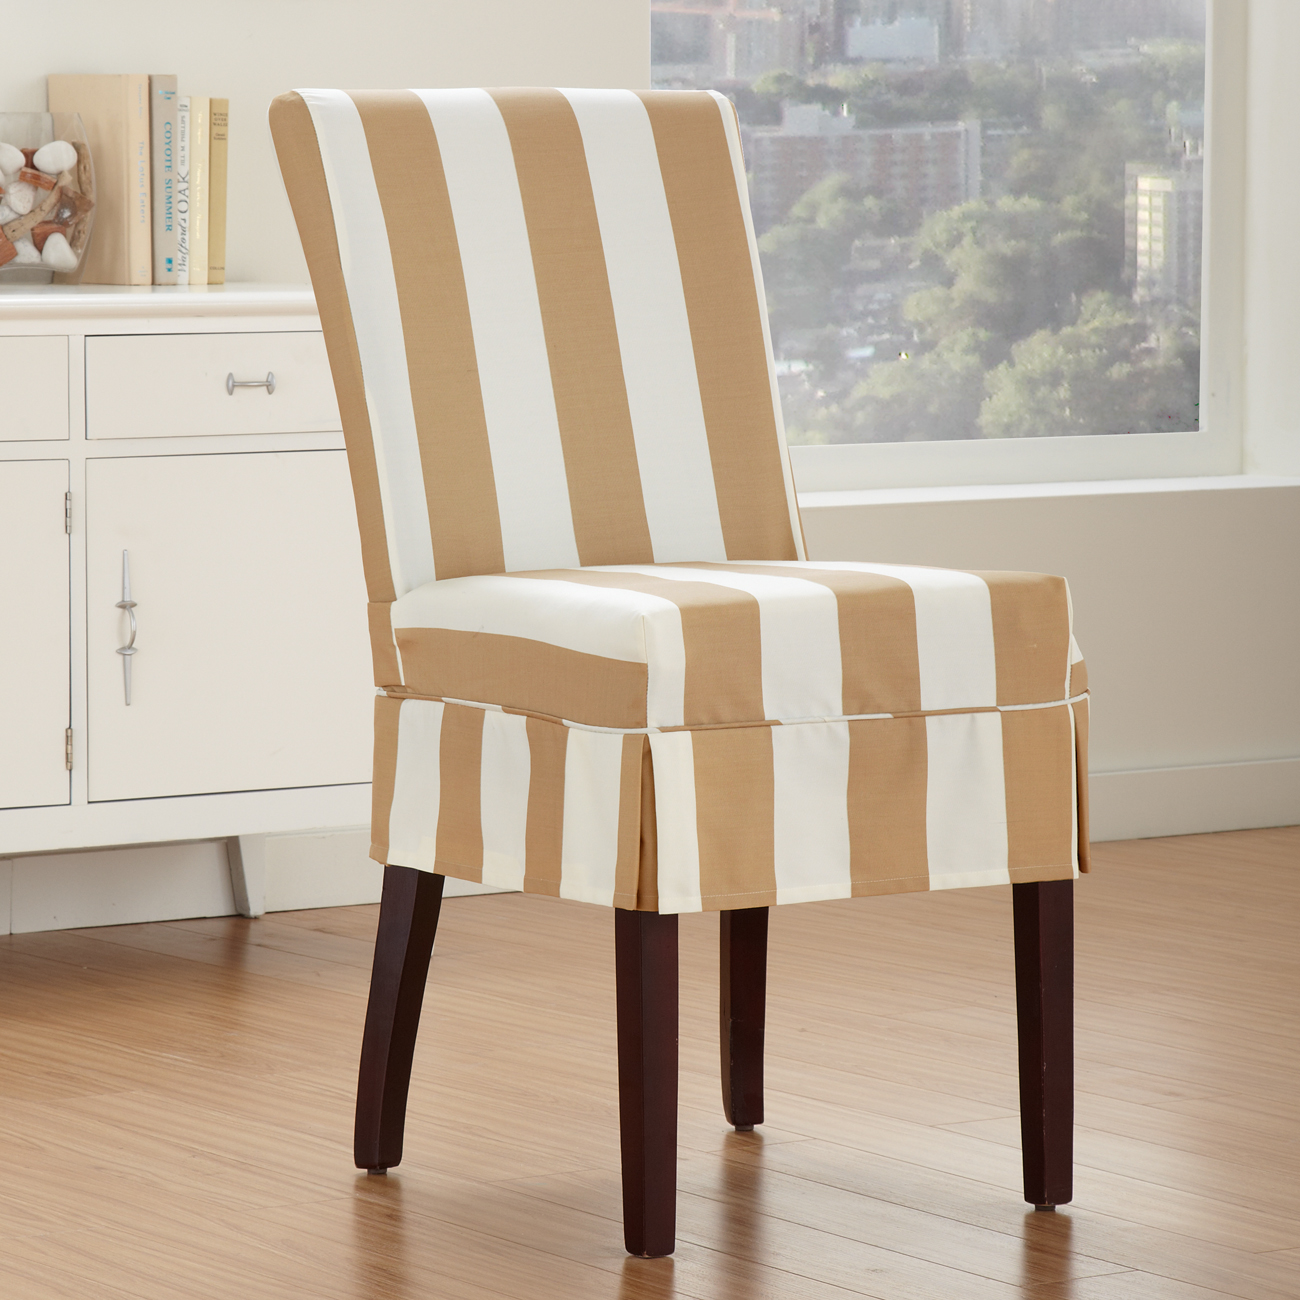 Slipcover for dining chair - large and beautiful photos. Photo to ...